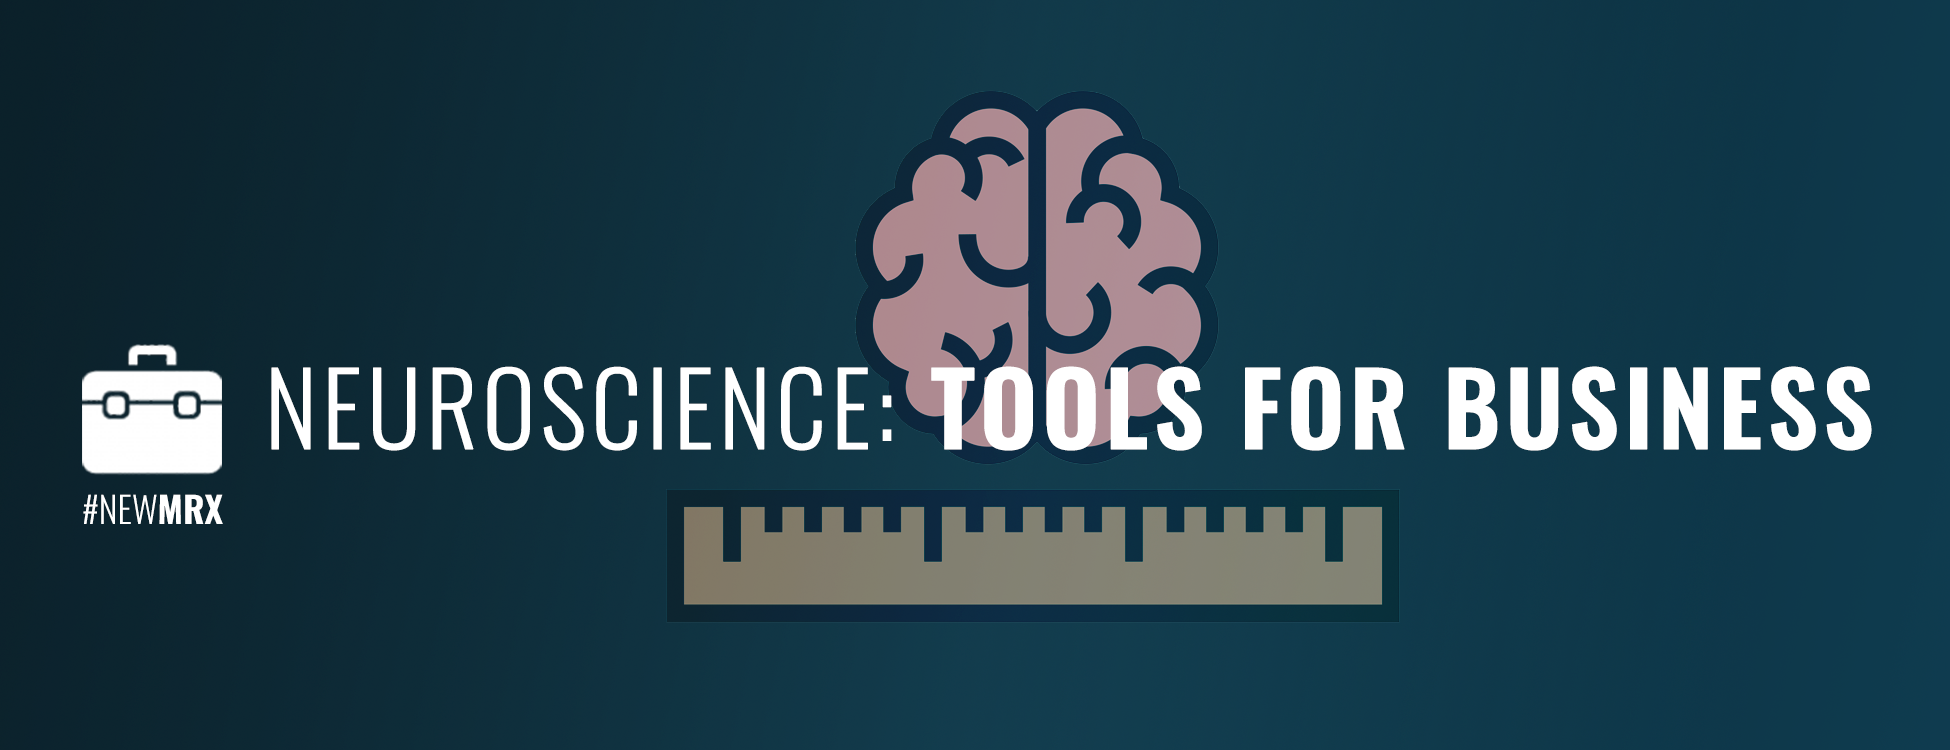 Neuroscience: Tools for Business blog banner - Insightrix - Marketing - market research - research - neuromarketing - eye tracking - facial coding - EEG - electroencephalogram - Saskatchewan - SK - Sask - market insight